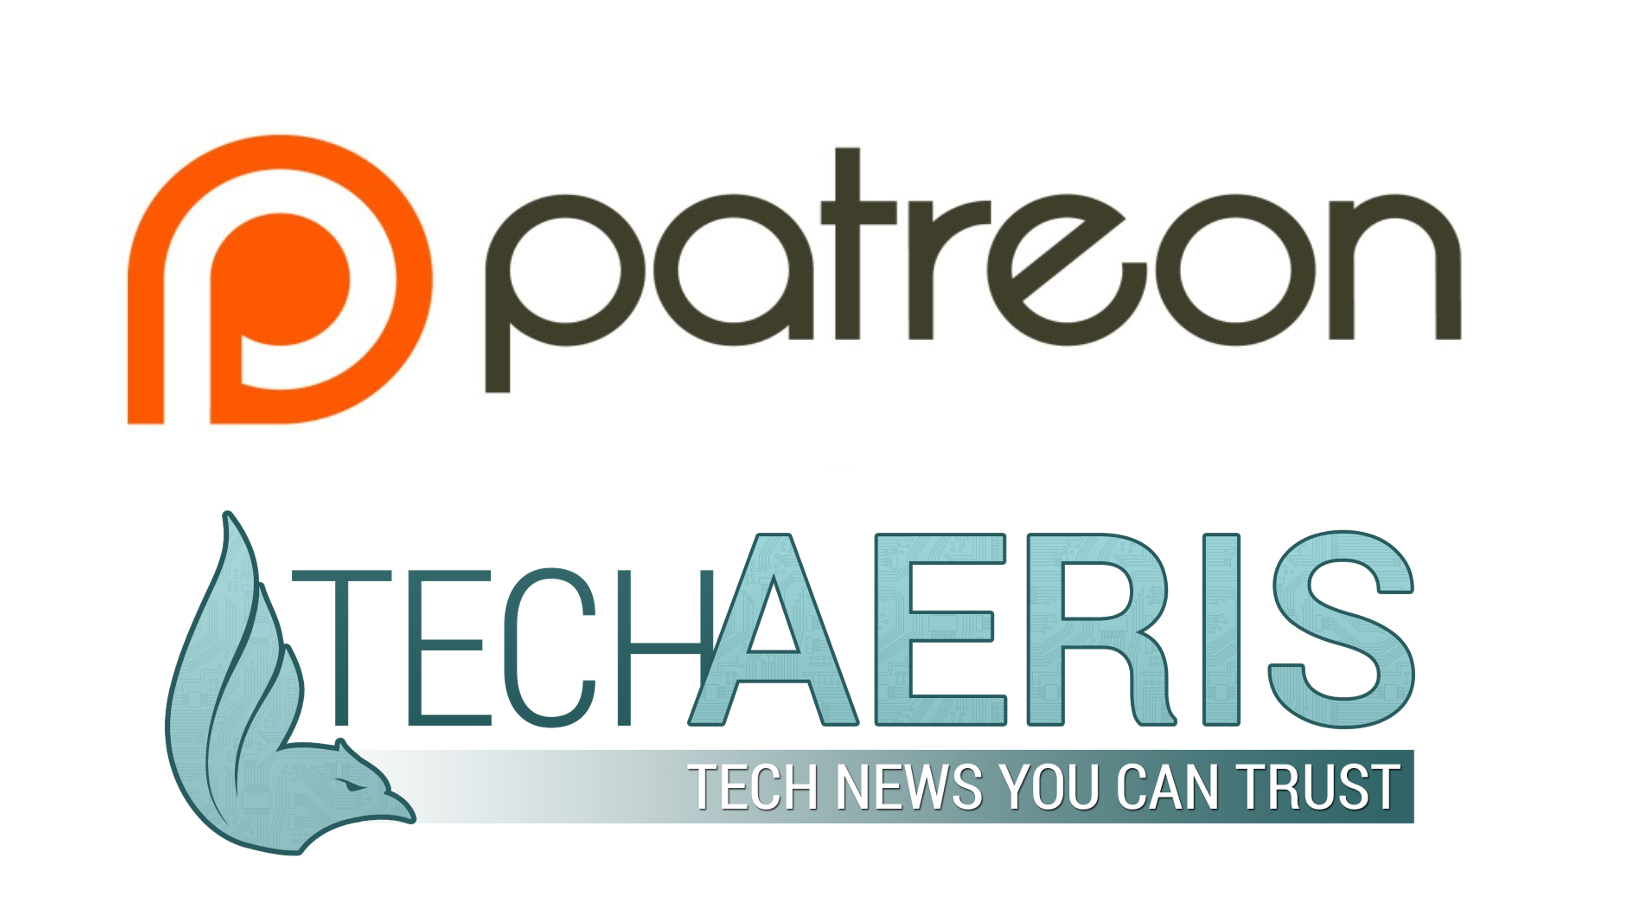 patreon-techaeris